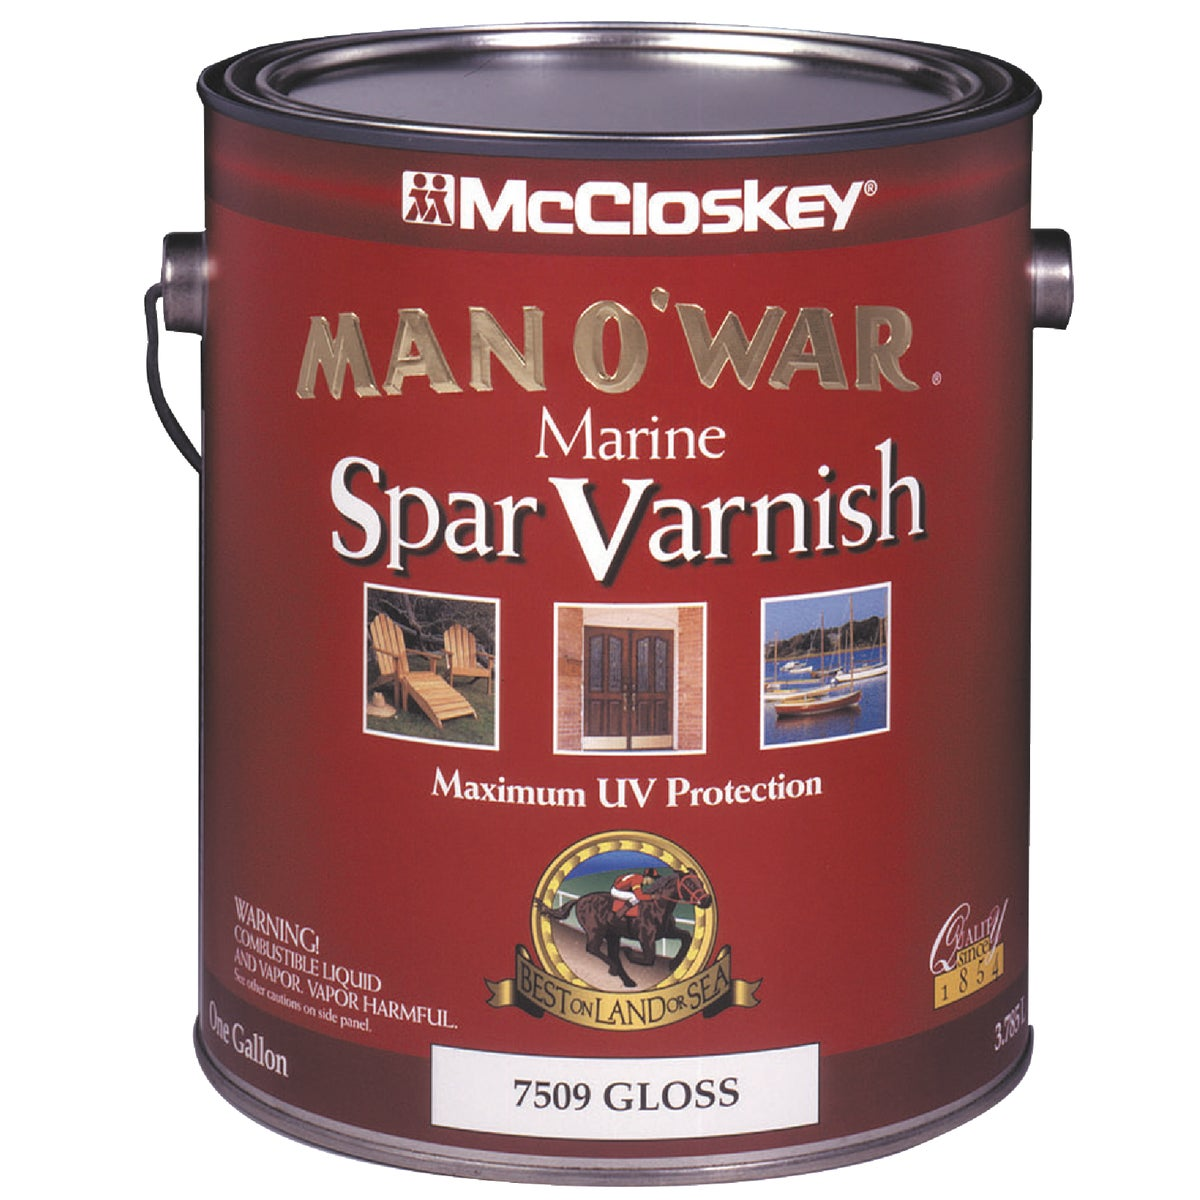 EXT GLS SPAR VARNISH - 080.0007509.007 by Valspar Corp